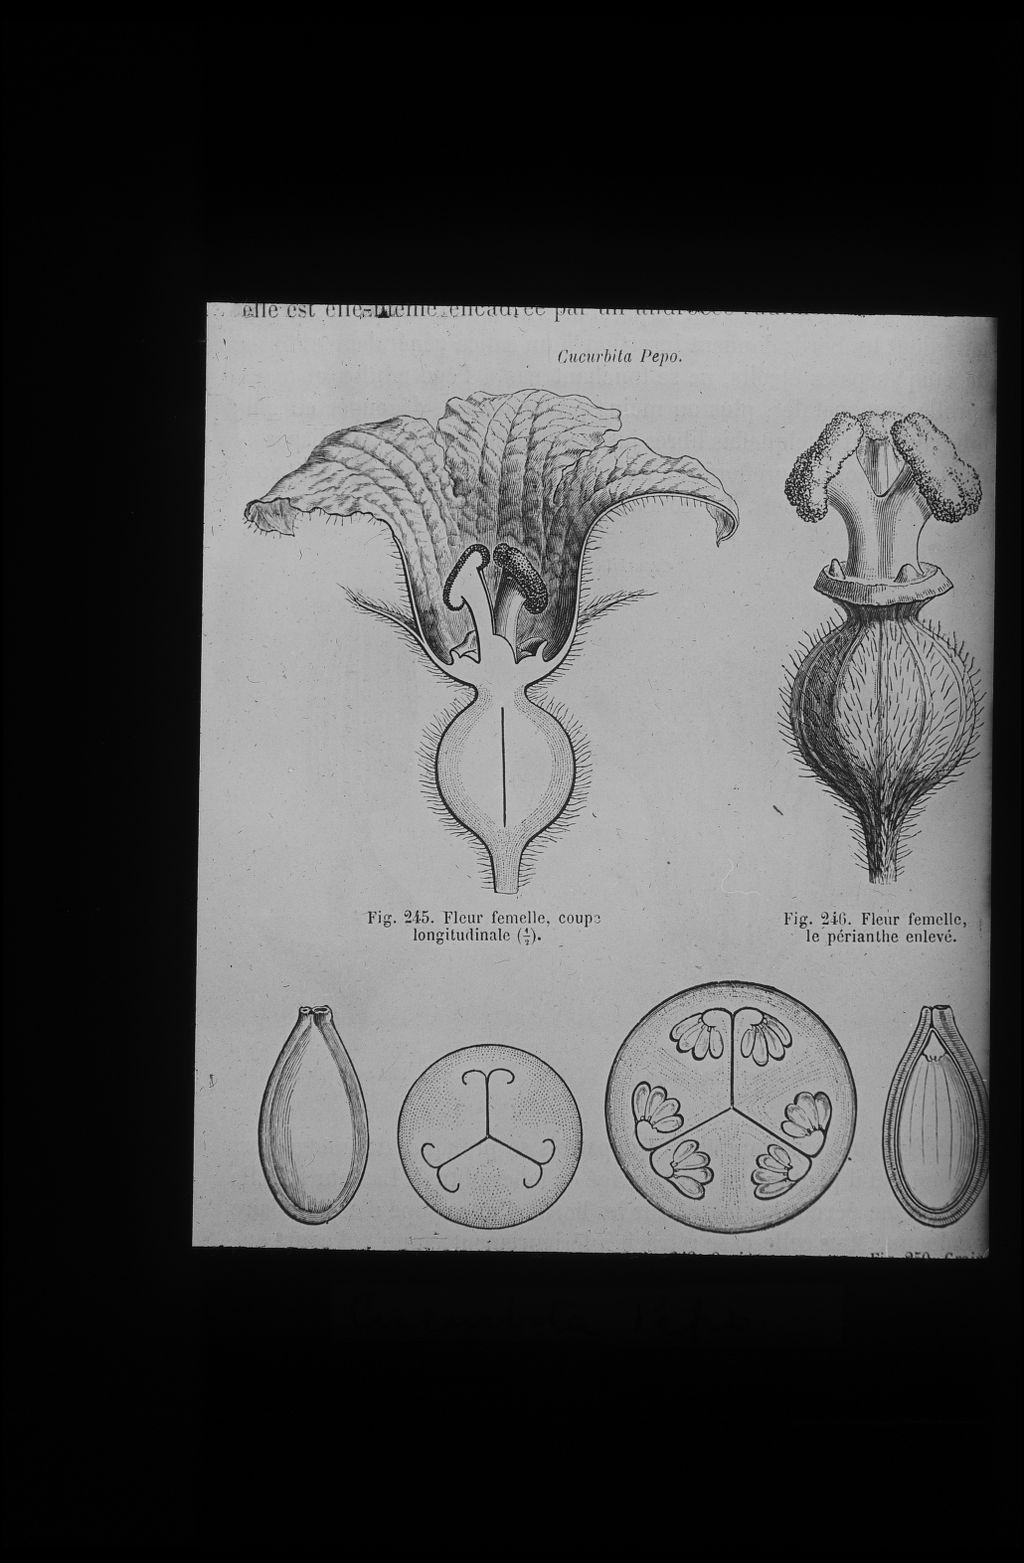 Cucurbita pepo. Female flower drawings.